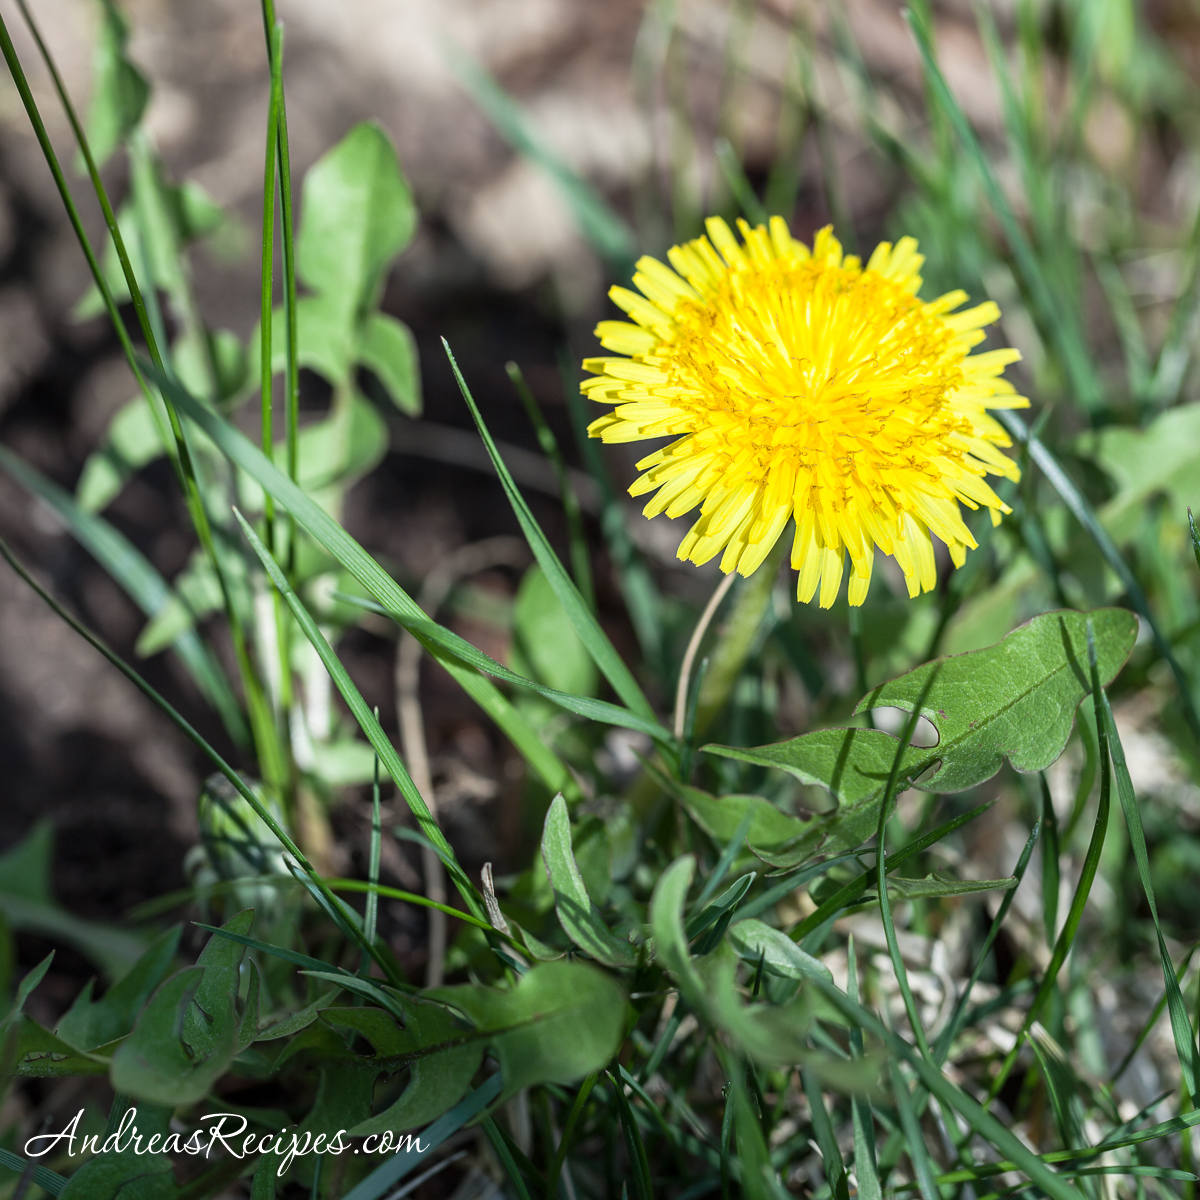 Dandelion flower and leaves - Andrea Meyers